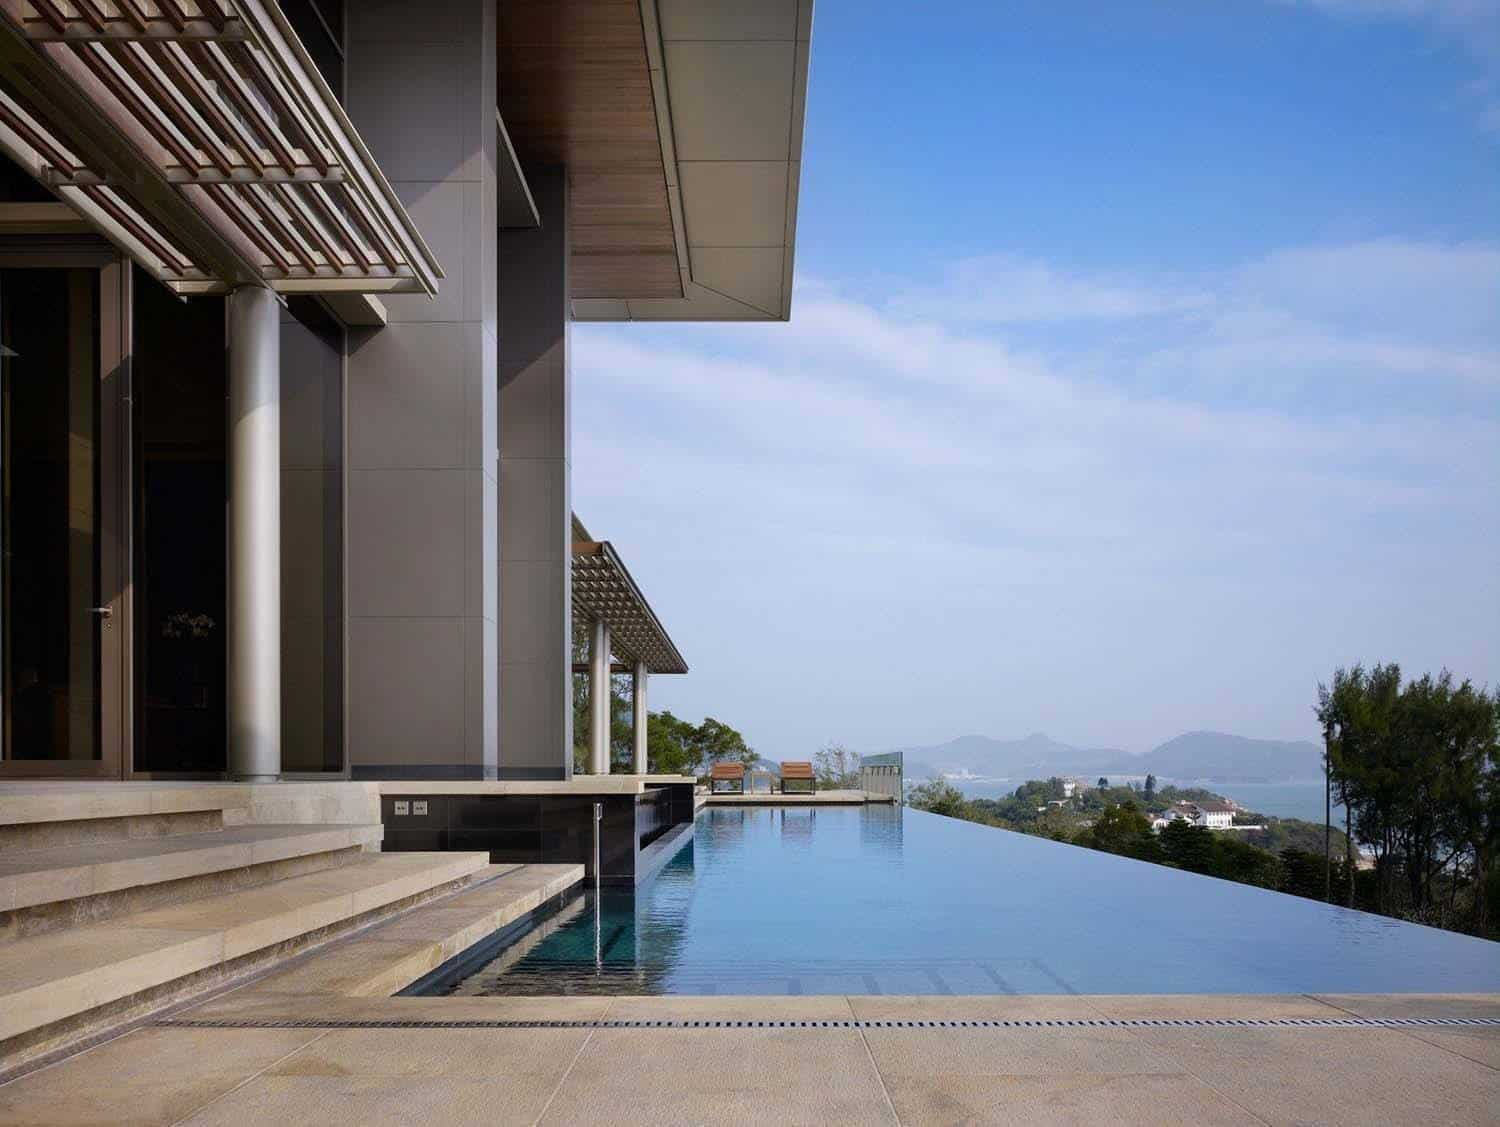 Hong Kong Villa-Olson Kundig Architects-04-1 Kindesign